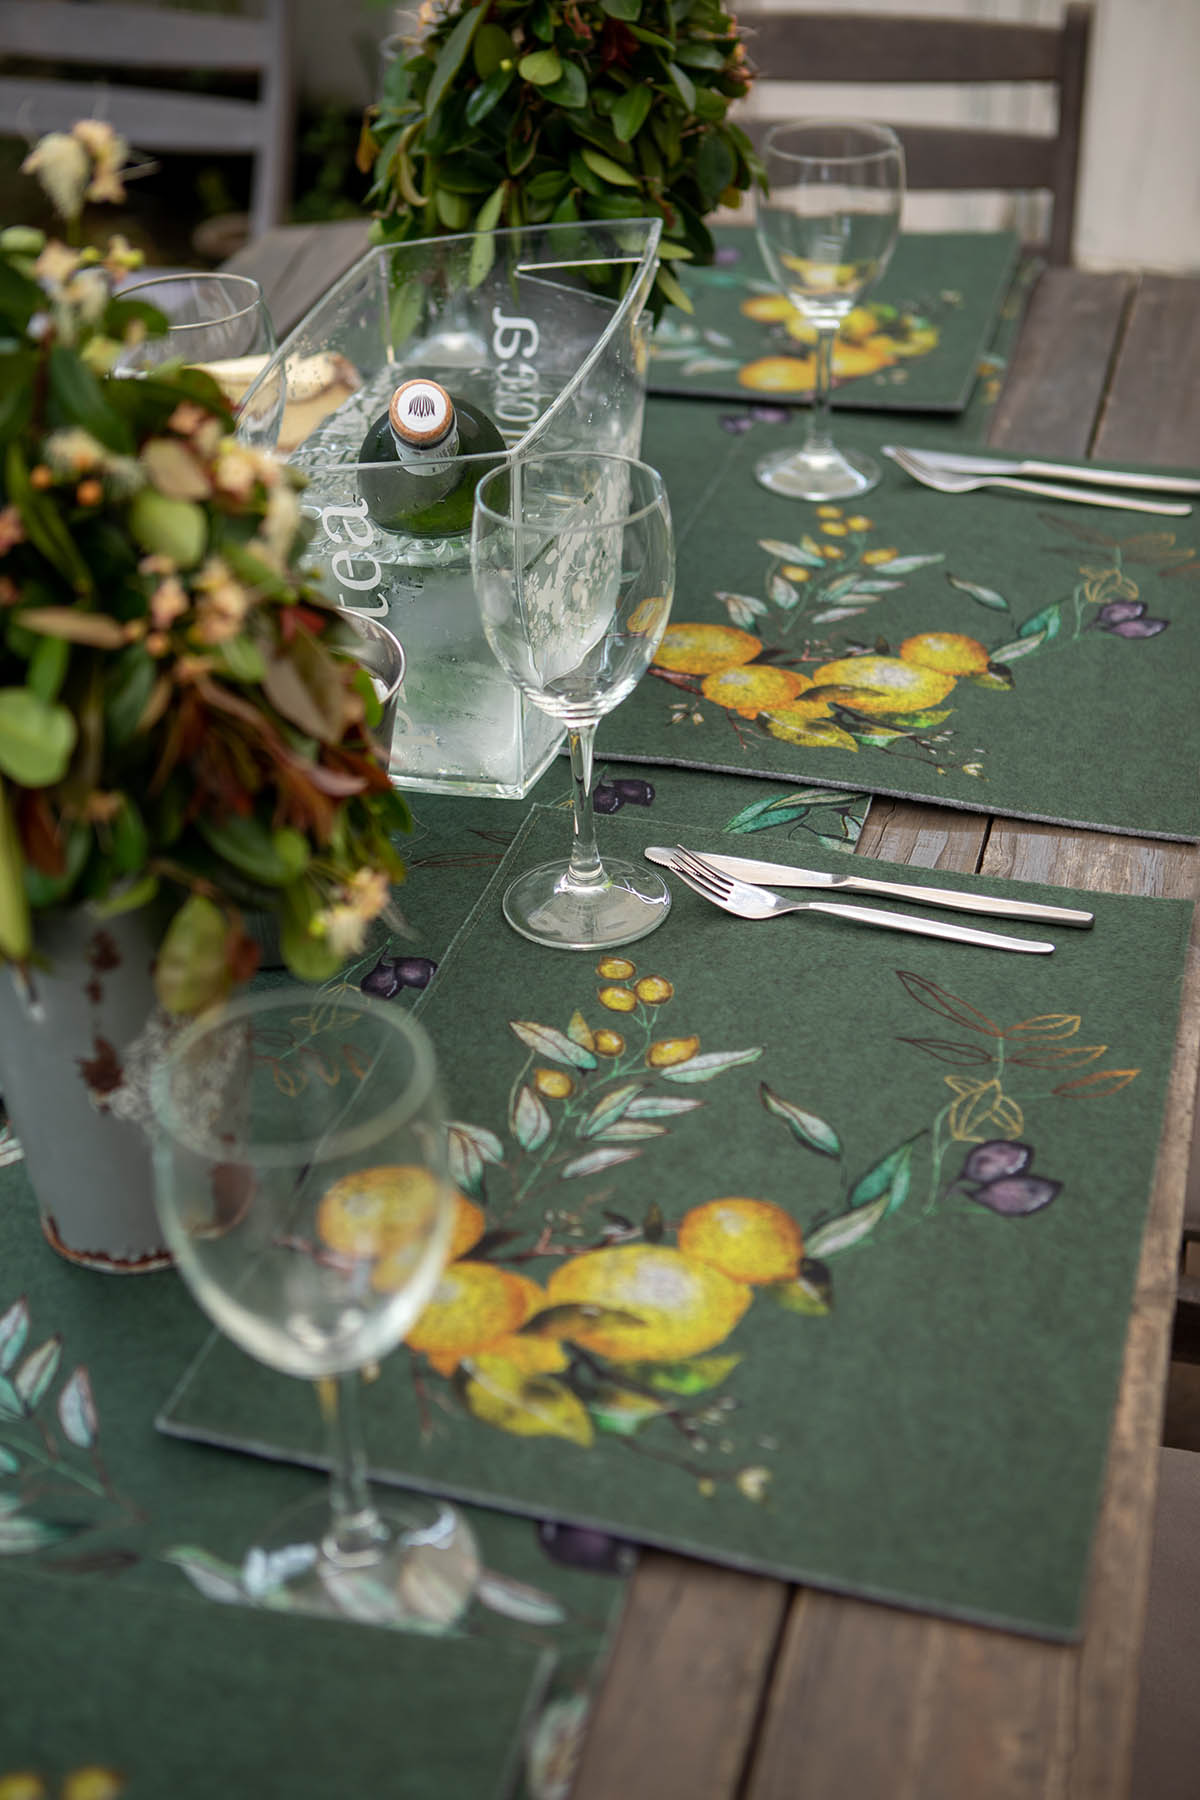 Pritty Awesome Hand Painted Watercolour Art applied to Kitchen Range